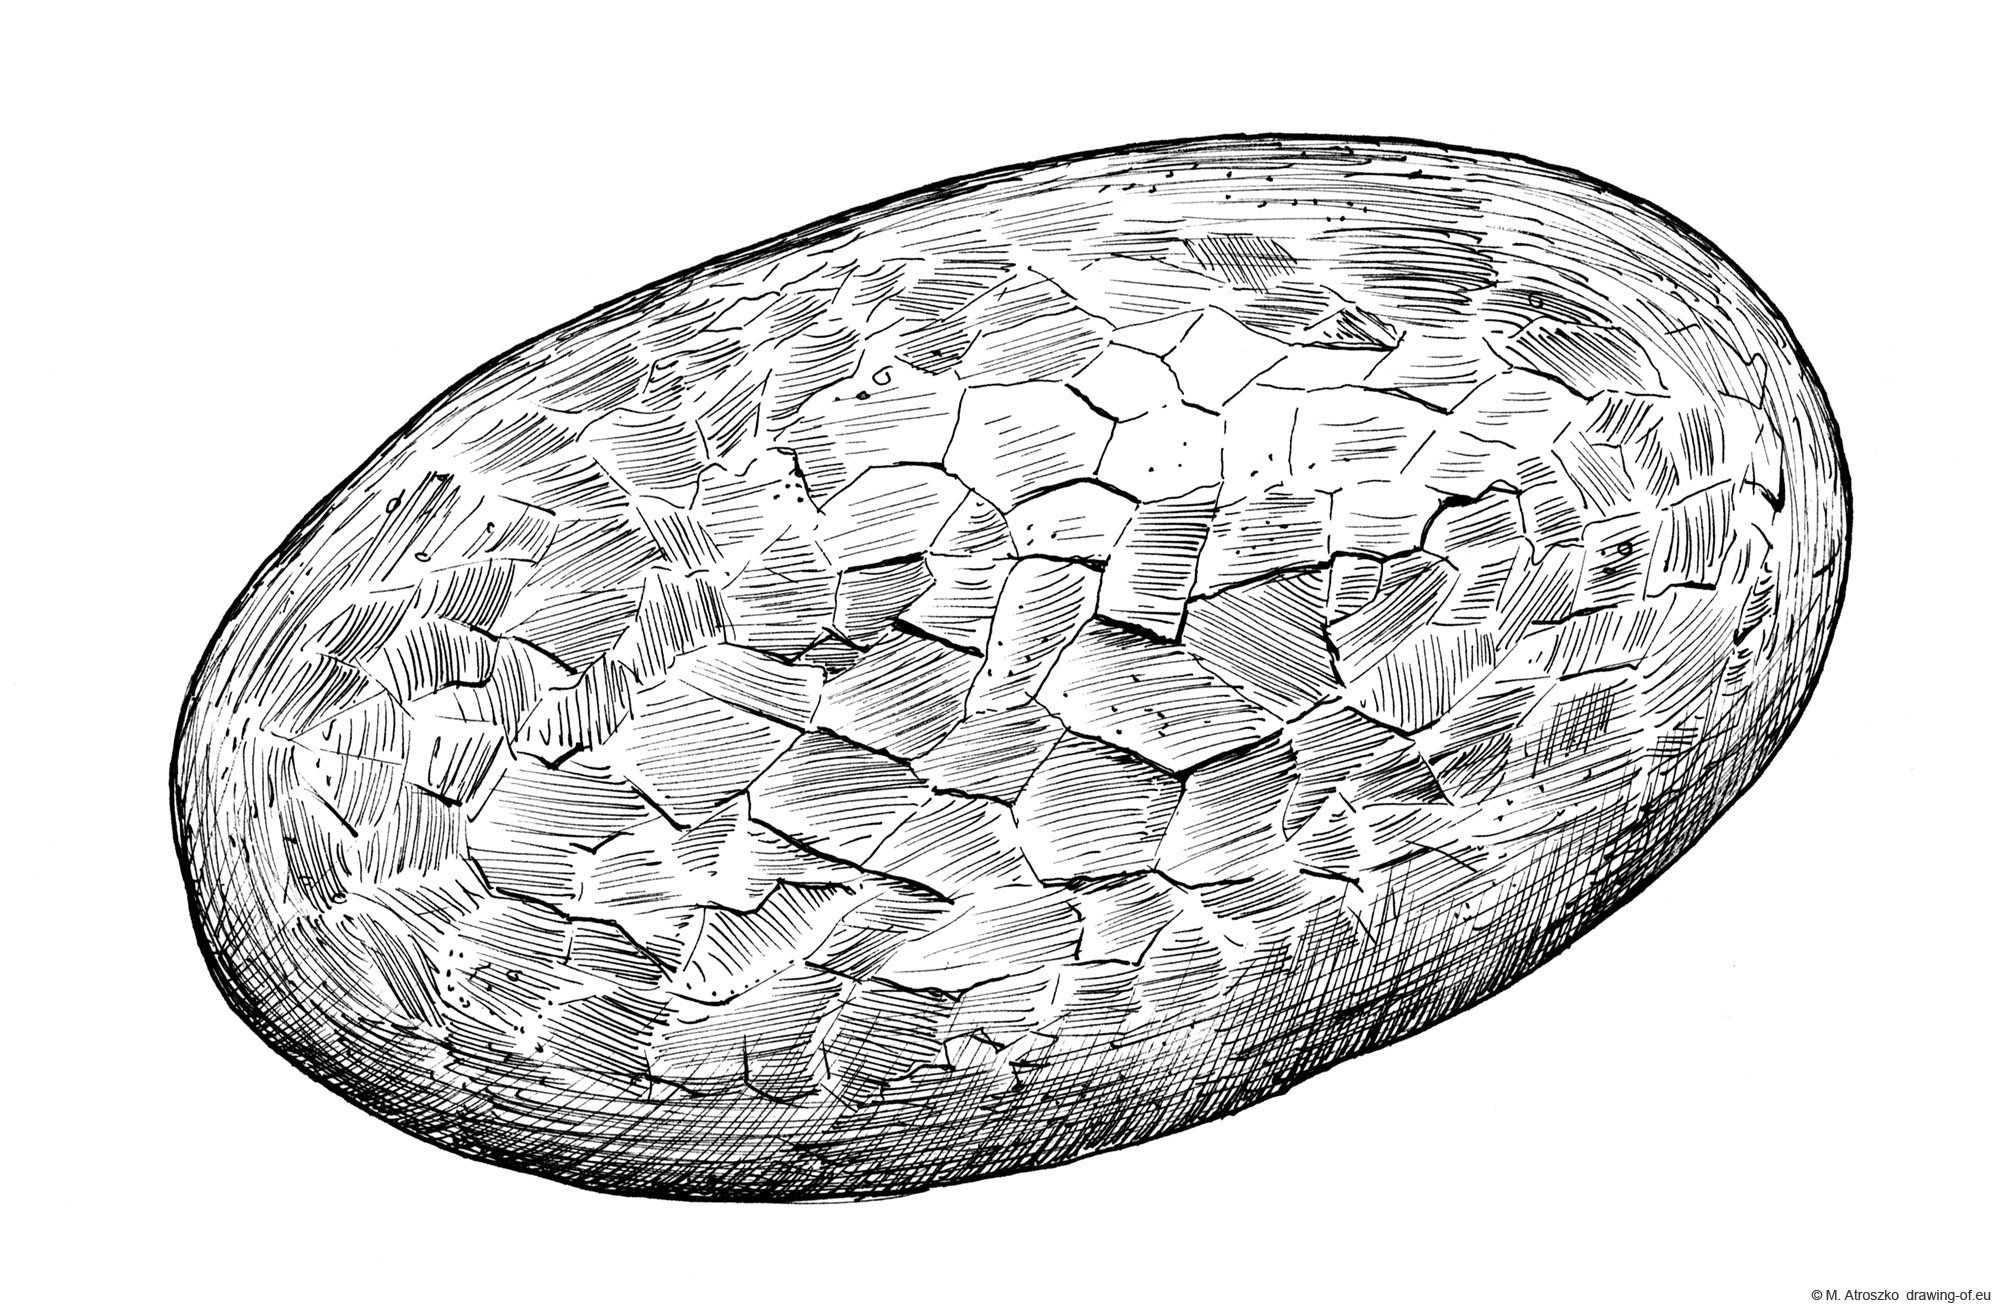 Drawing of bread